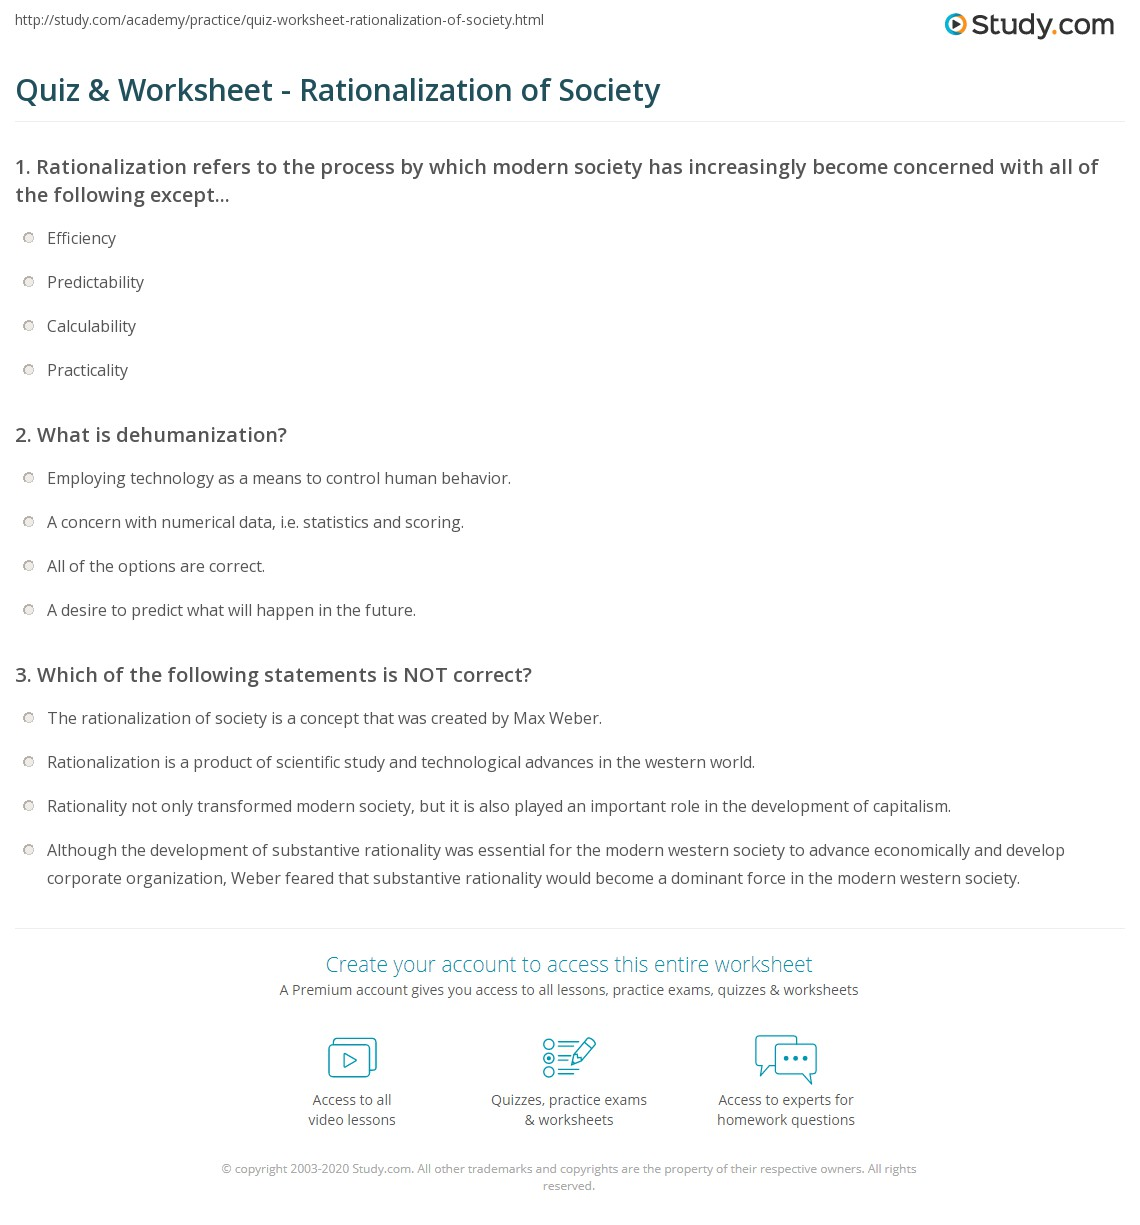 Quiz Worksheet Rationalization Of Society Study